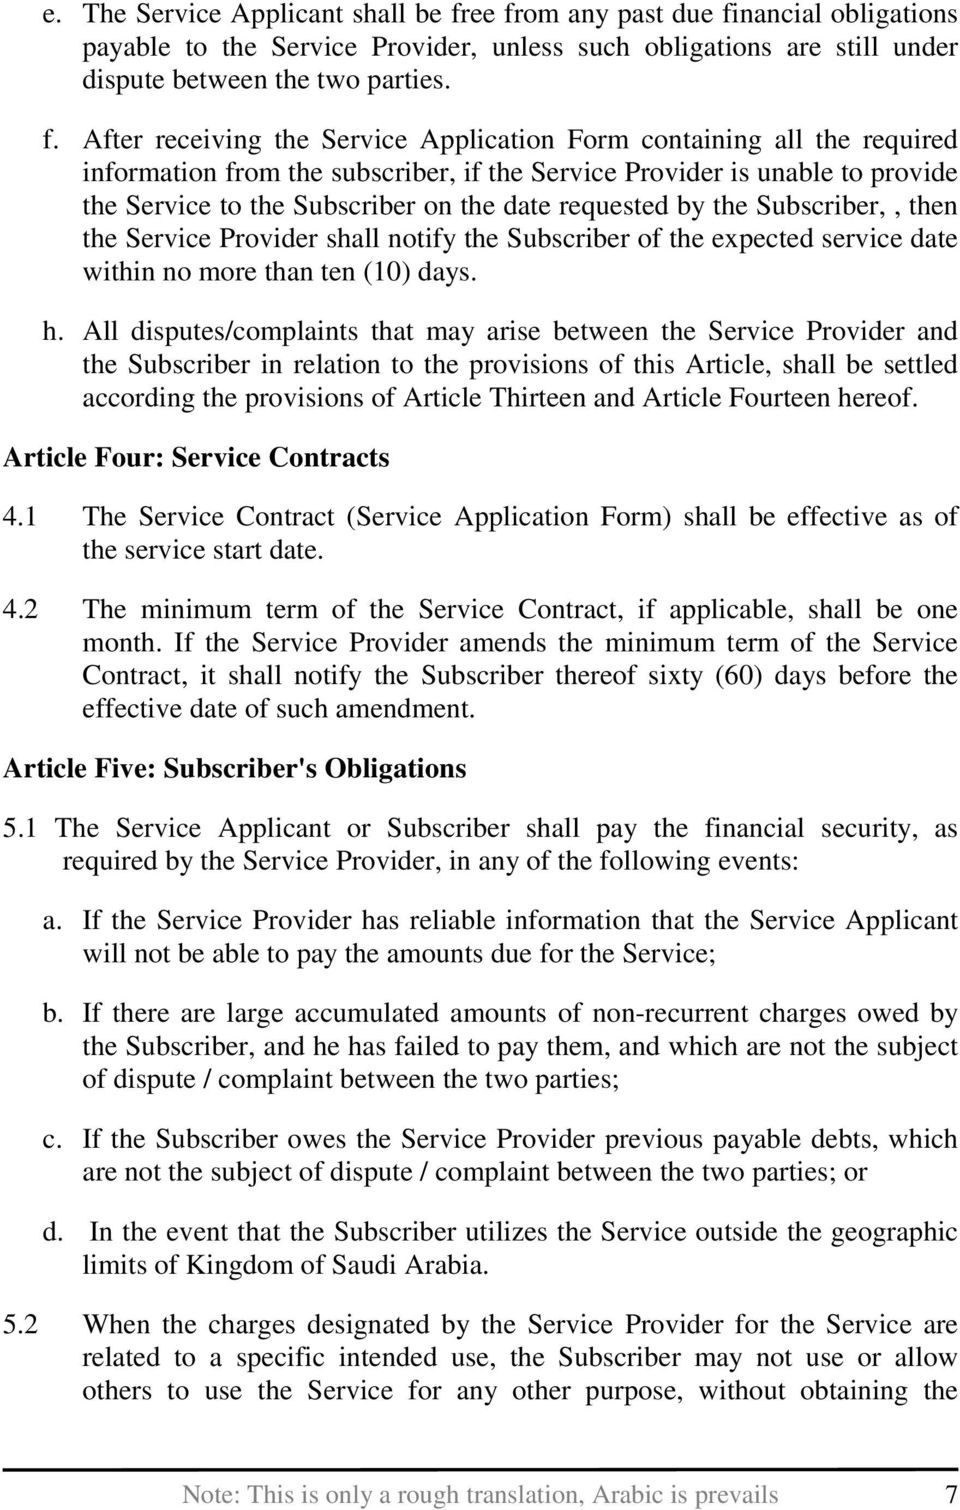 containing all the required information from the subscriber, if the Service Provider is unable to provide the Service to the Subscriber on the date requested by the Subscriber,, then the Service